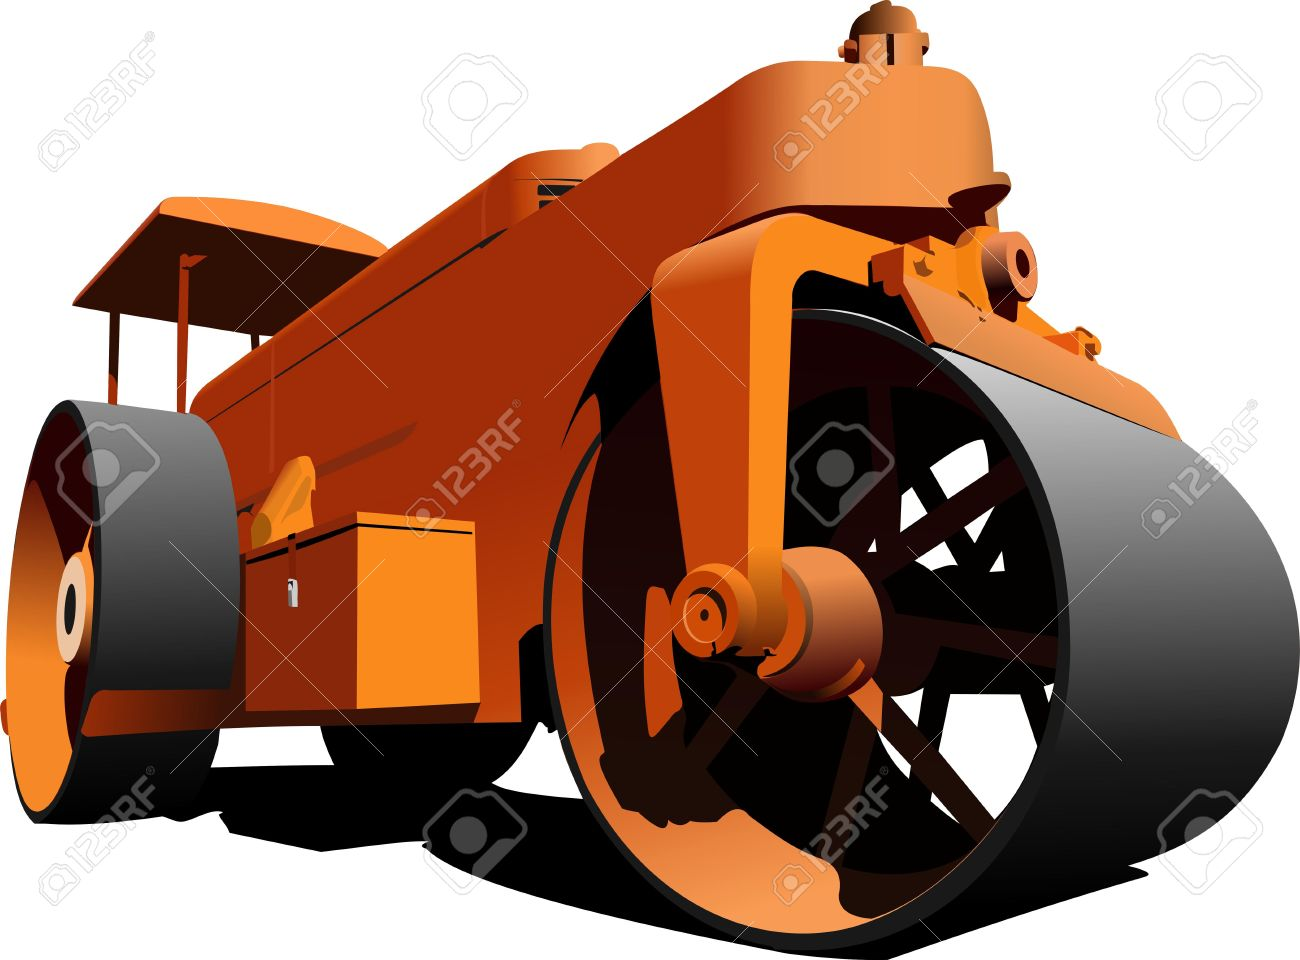 Road Roller Royalty Free Cliparts, Vectors, And Stock Illustration.